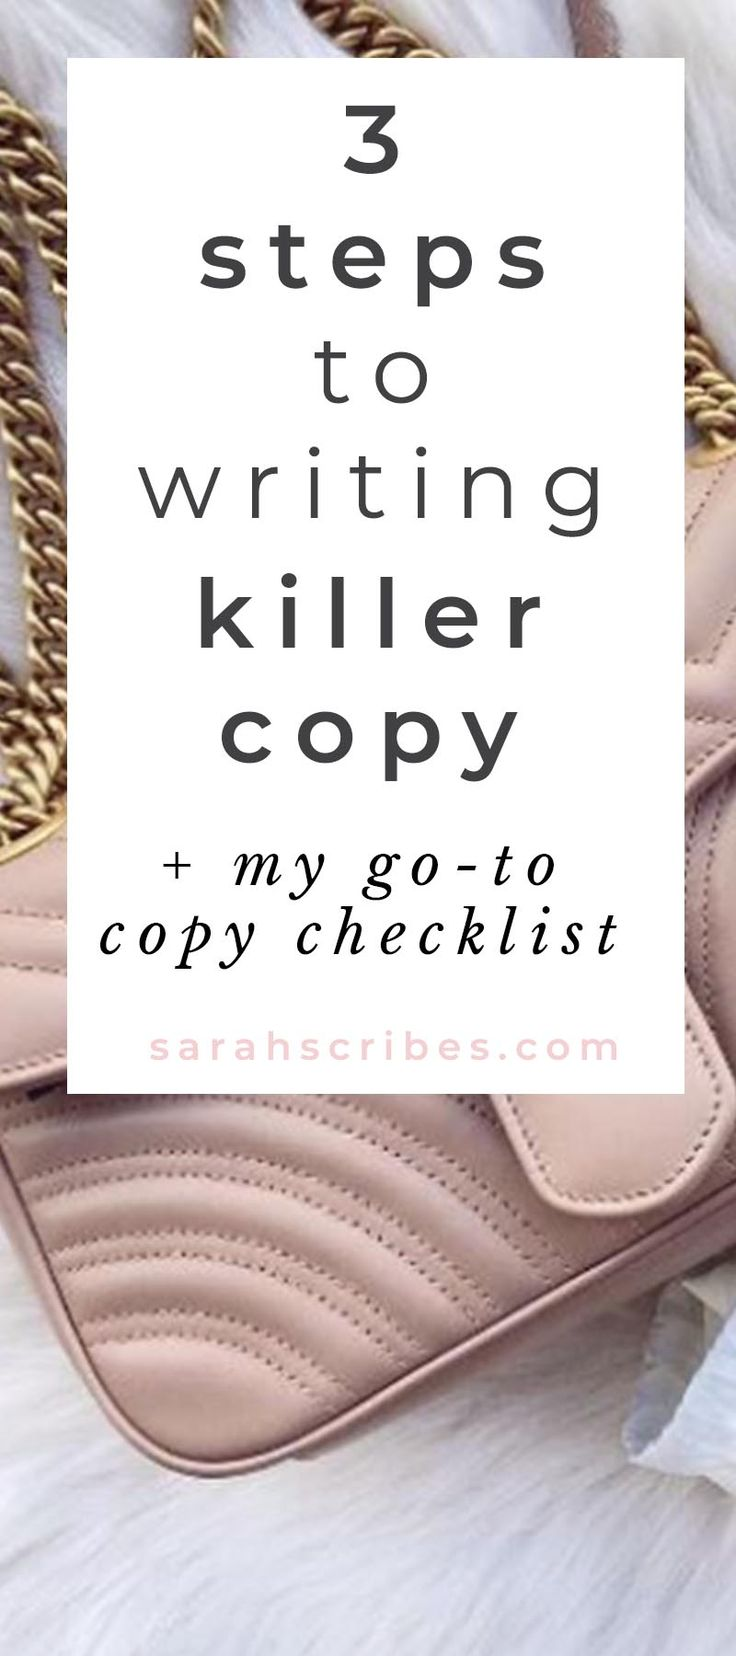 Best Copywriting Tips| Business Tips | Branding | Blogging Tips | Blog | Sarah Louise | Blog Ideas | Entrepreneur | Quotes | Fashion |